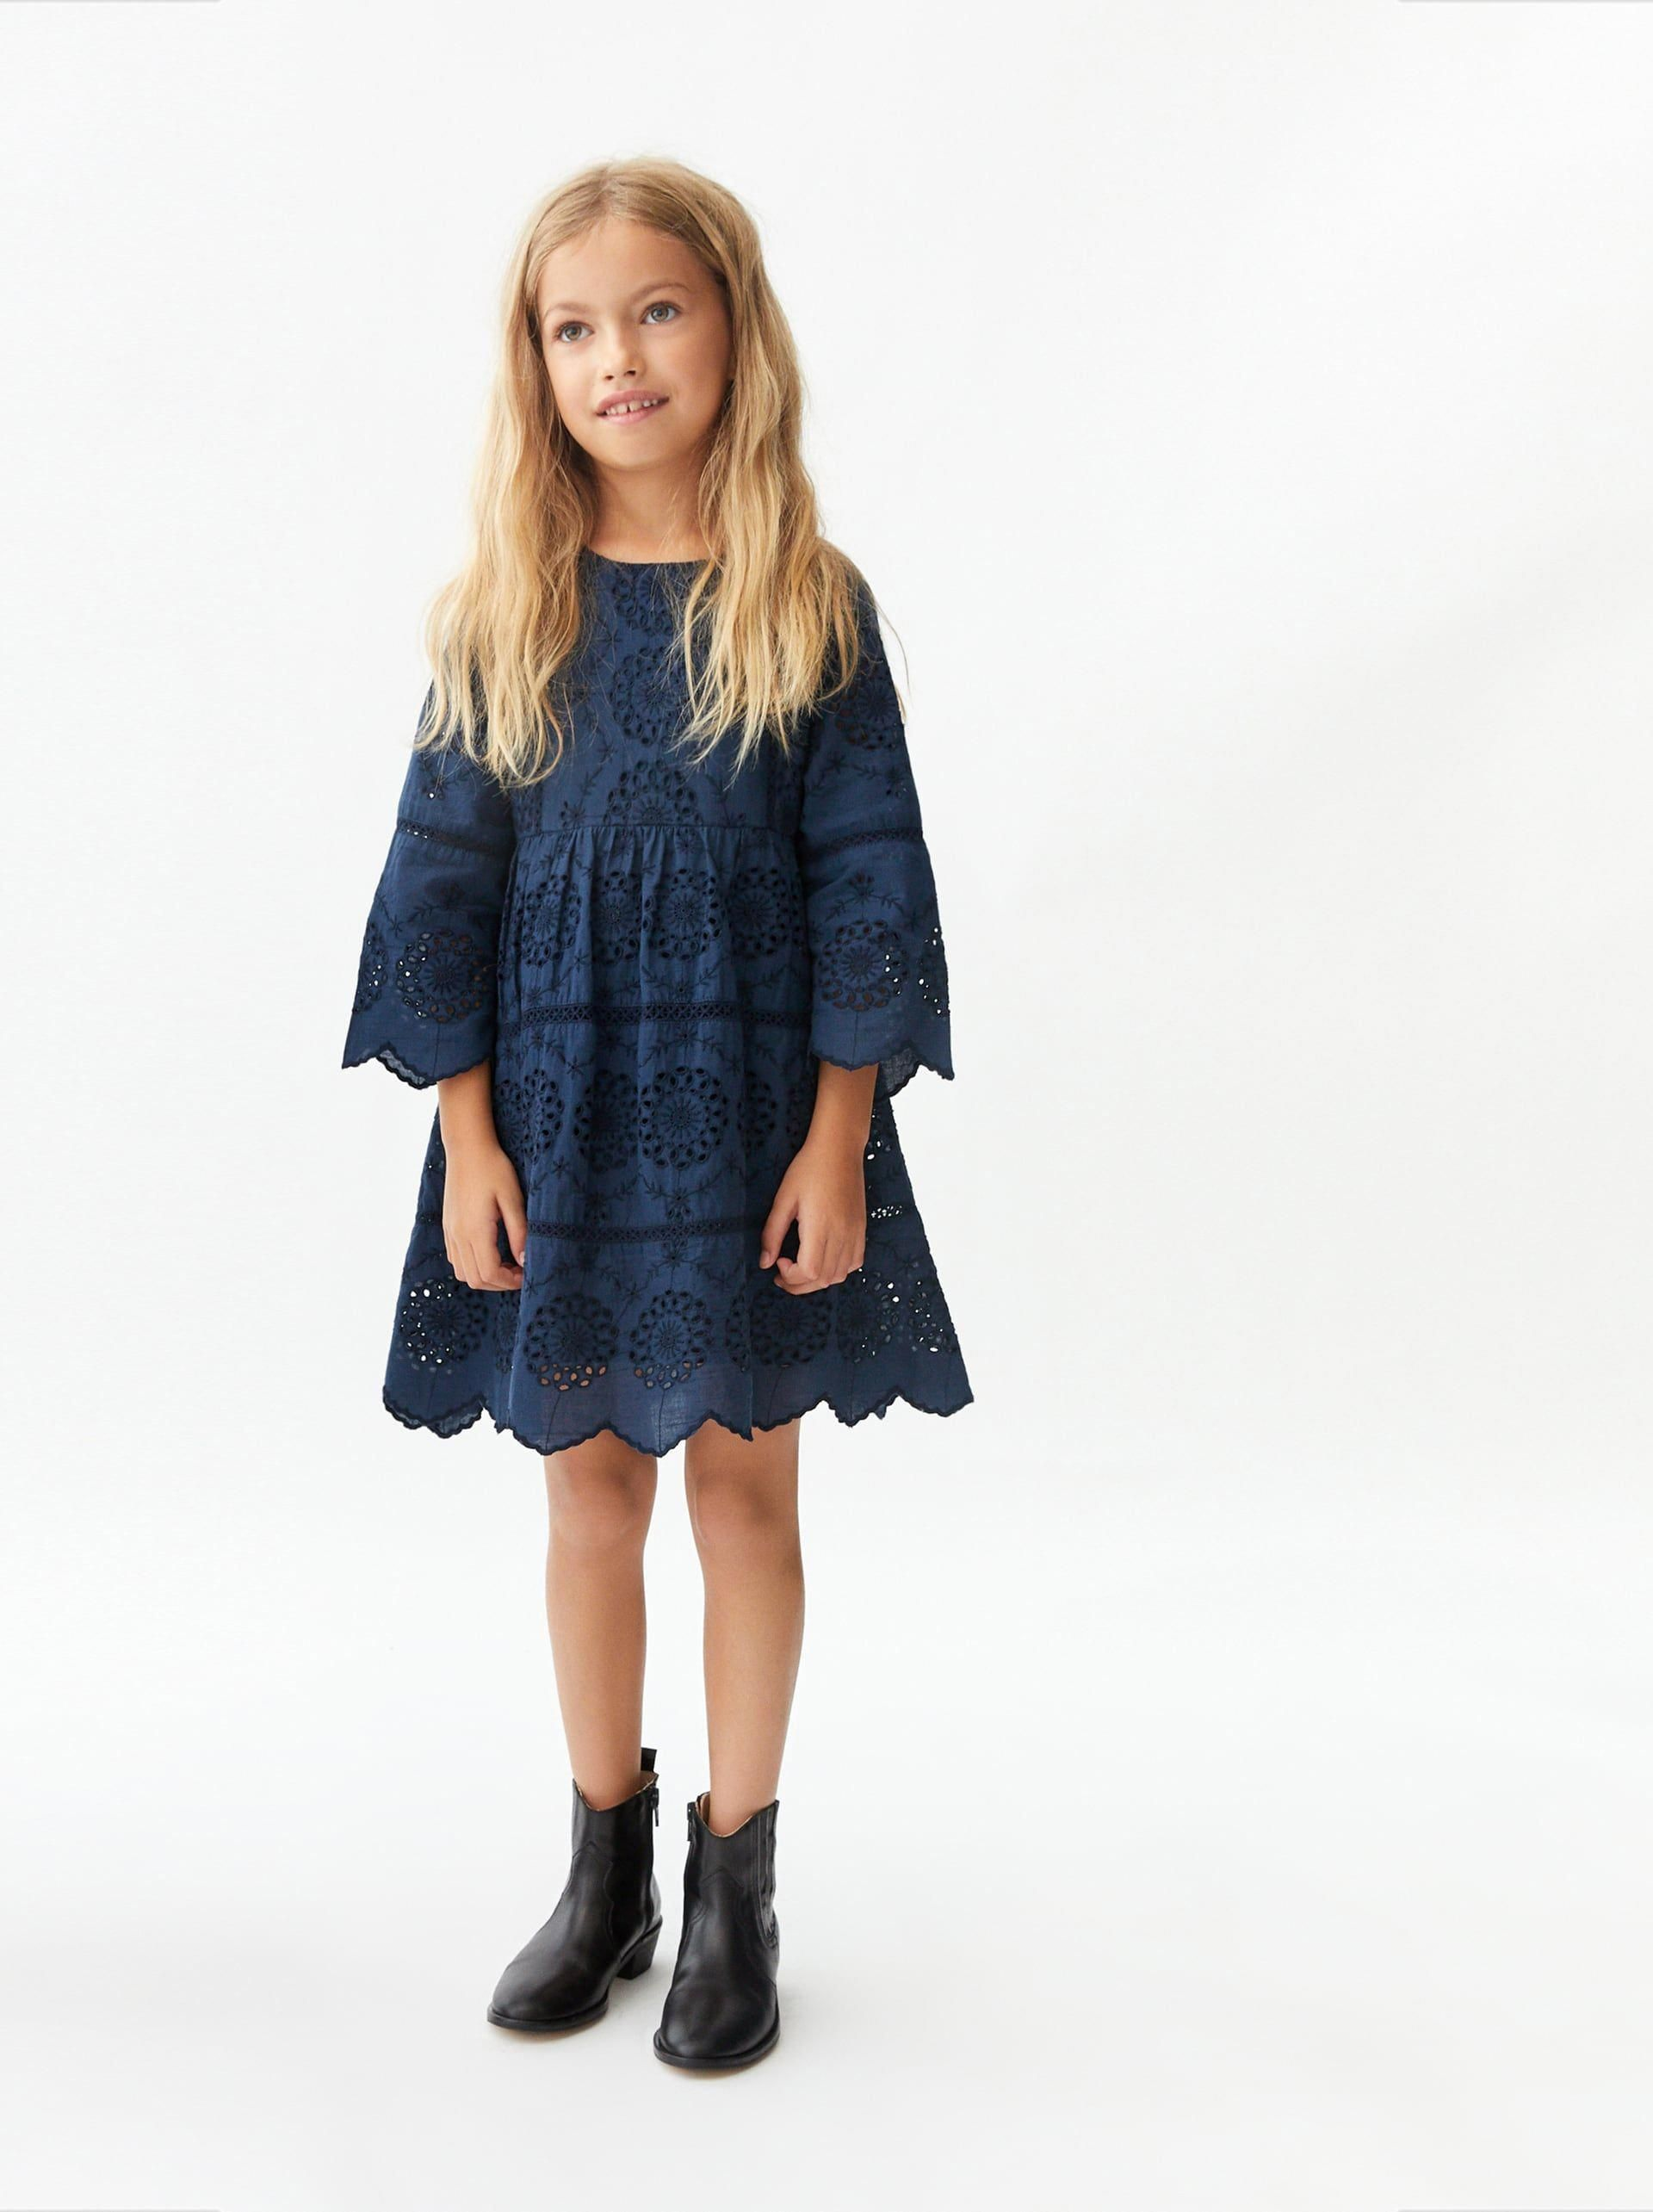 Cute Clothes For 7 Year Olds  Cute Clothes For 7 Year Old Girls